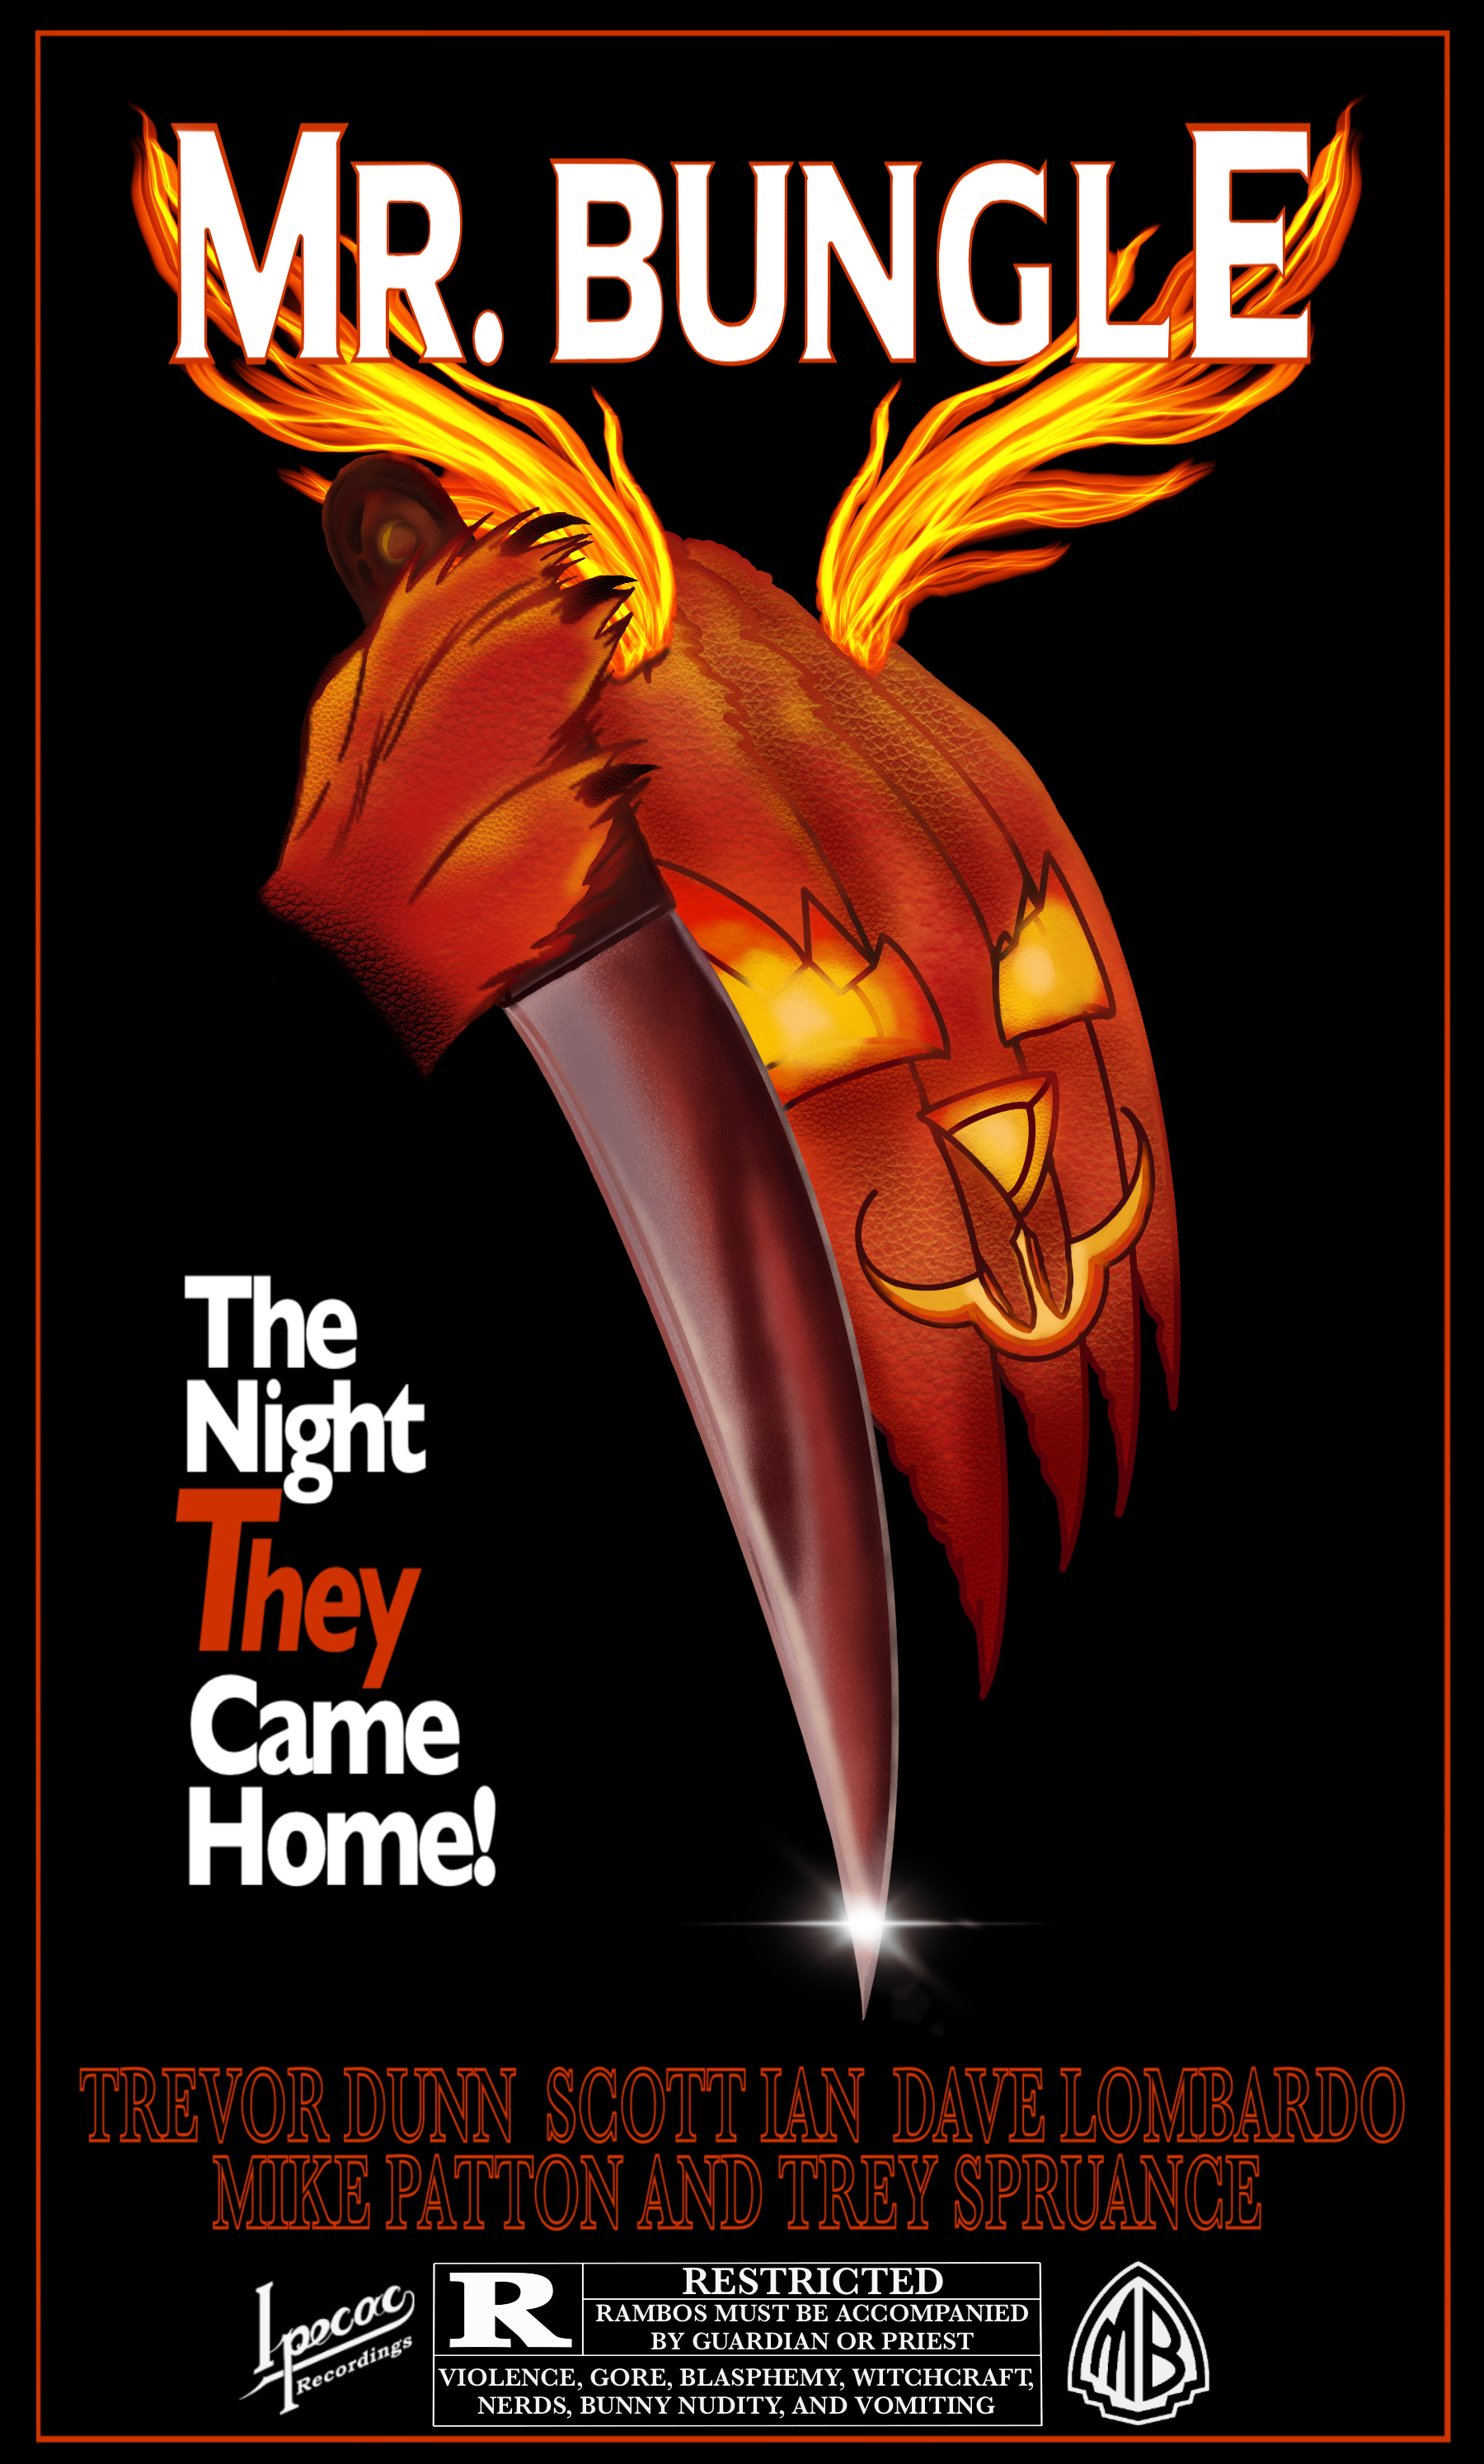 watch Mr. Bungle: The Night They Came Home on soap2day